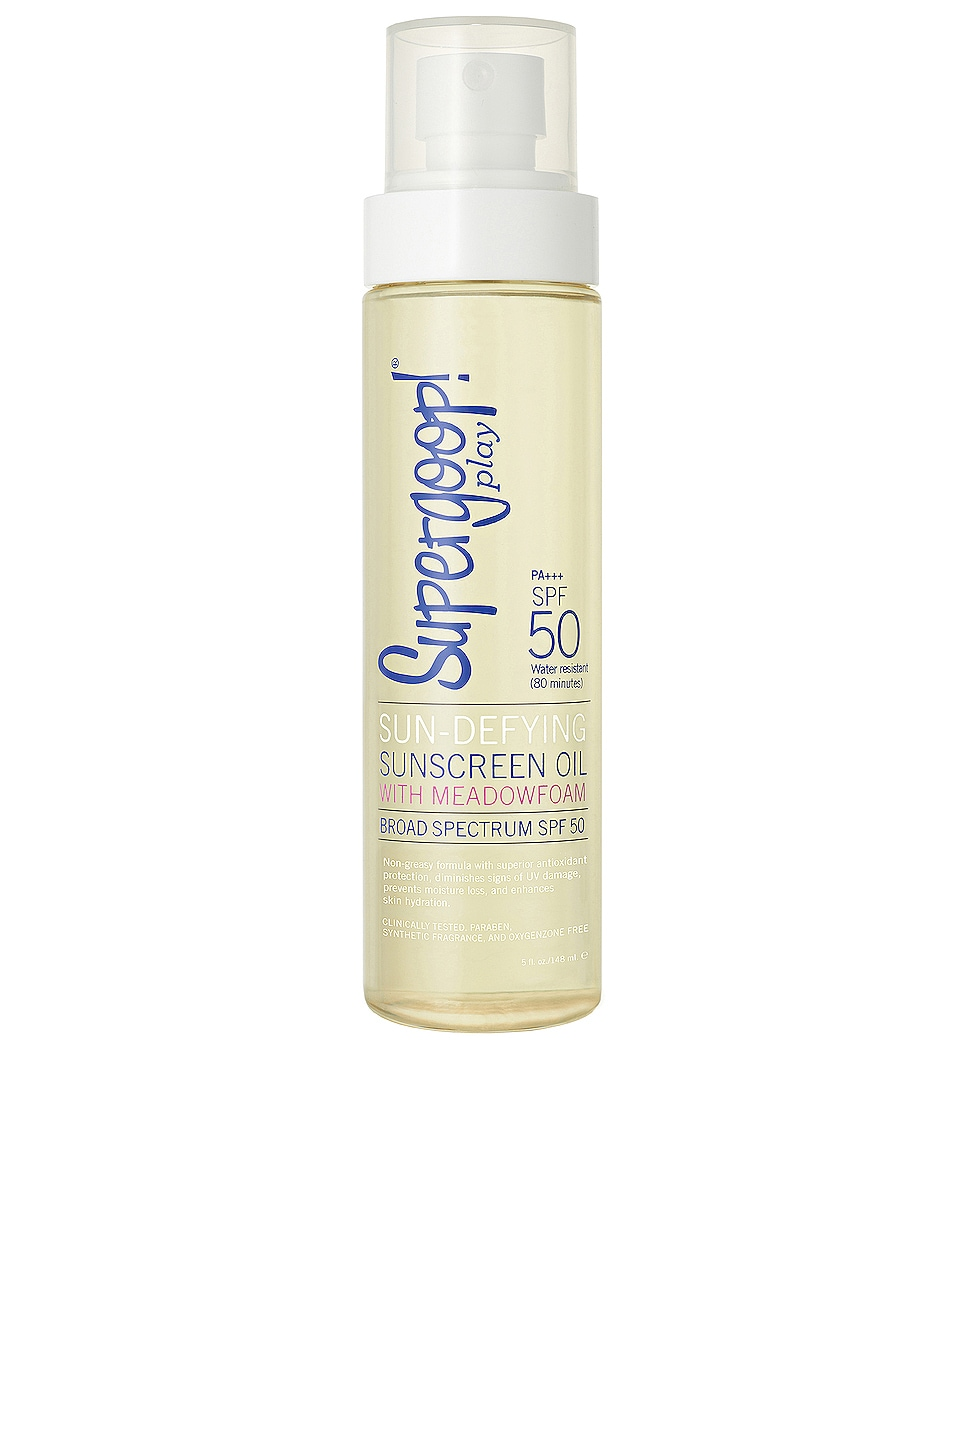 Supergoop! Sun Defying Sunscreen Oil SPF 50 5 oz